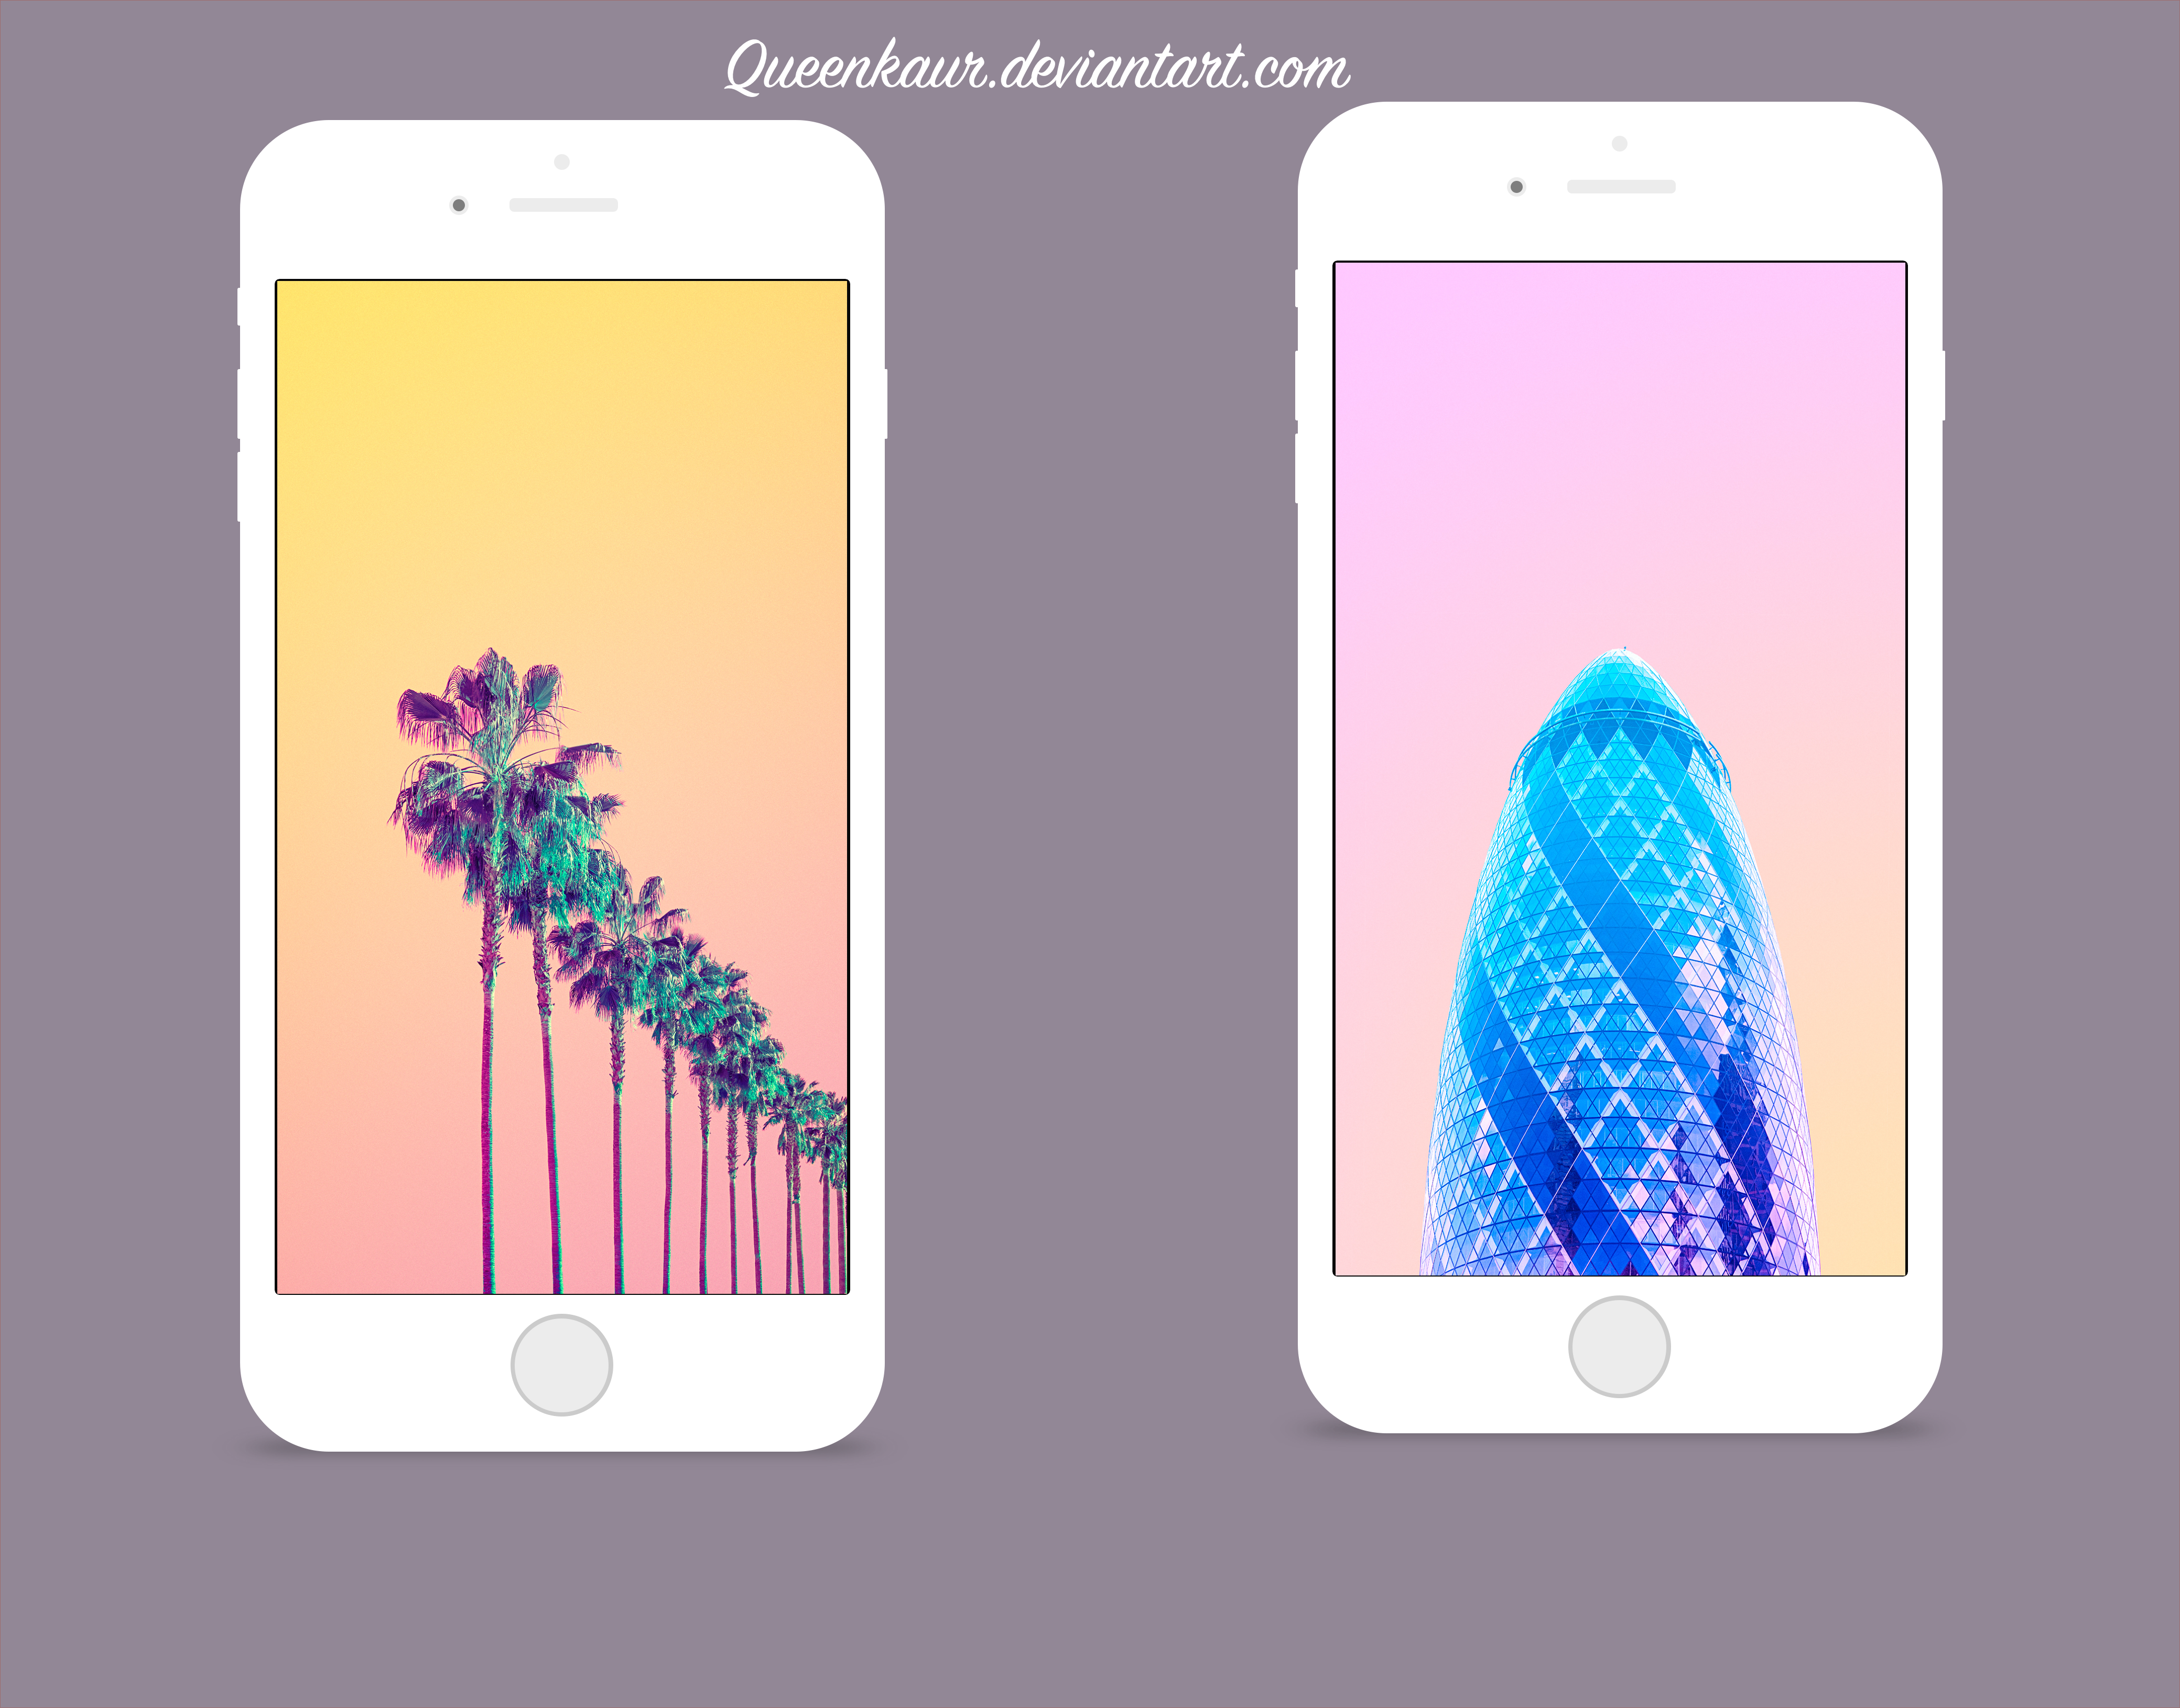 IOS 11 Wallpapers Pack 4 By Queenkaur On DeviantArt